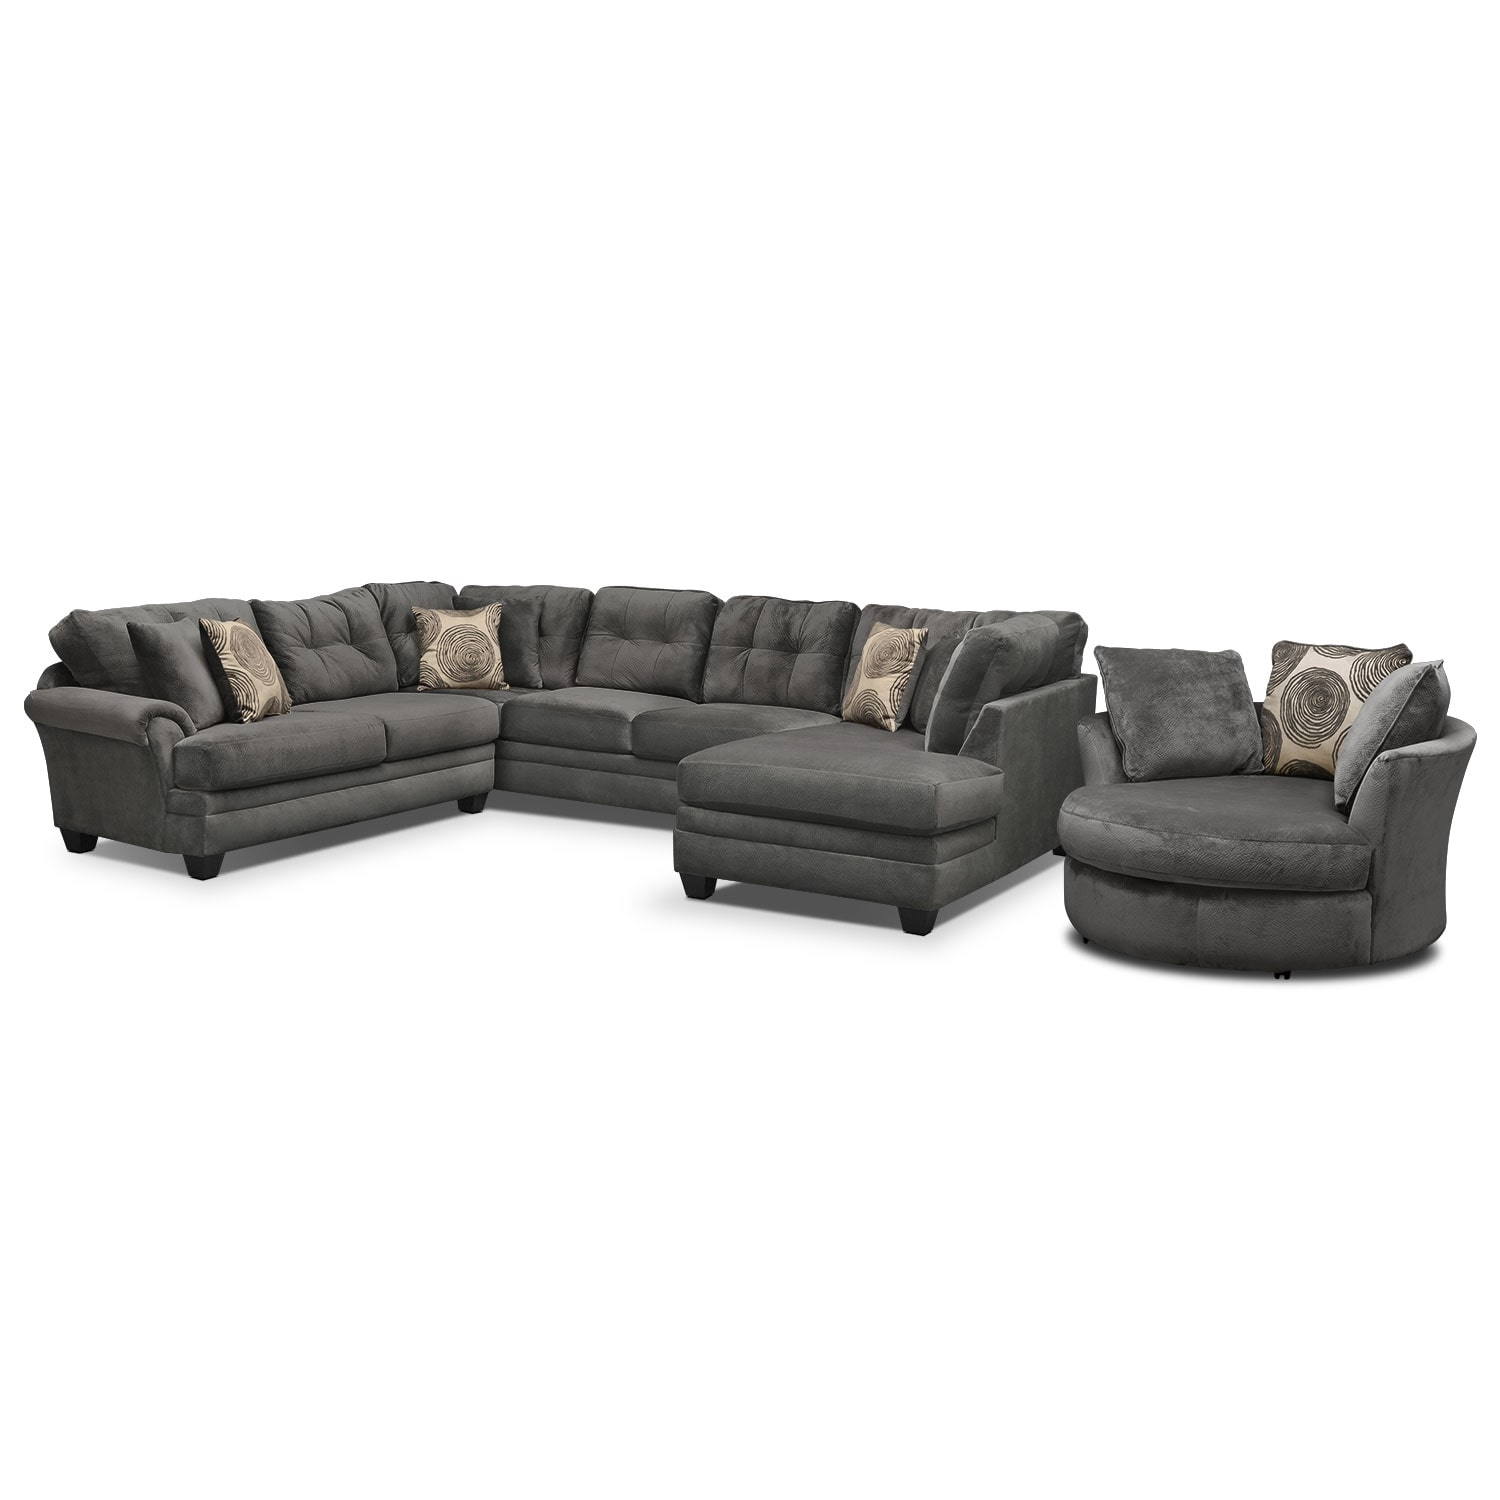 Cordelle 3 Piece Sectional With Chaise And Swivel Chair Set